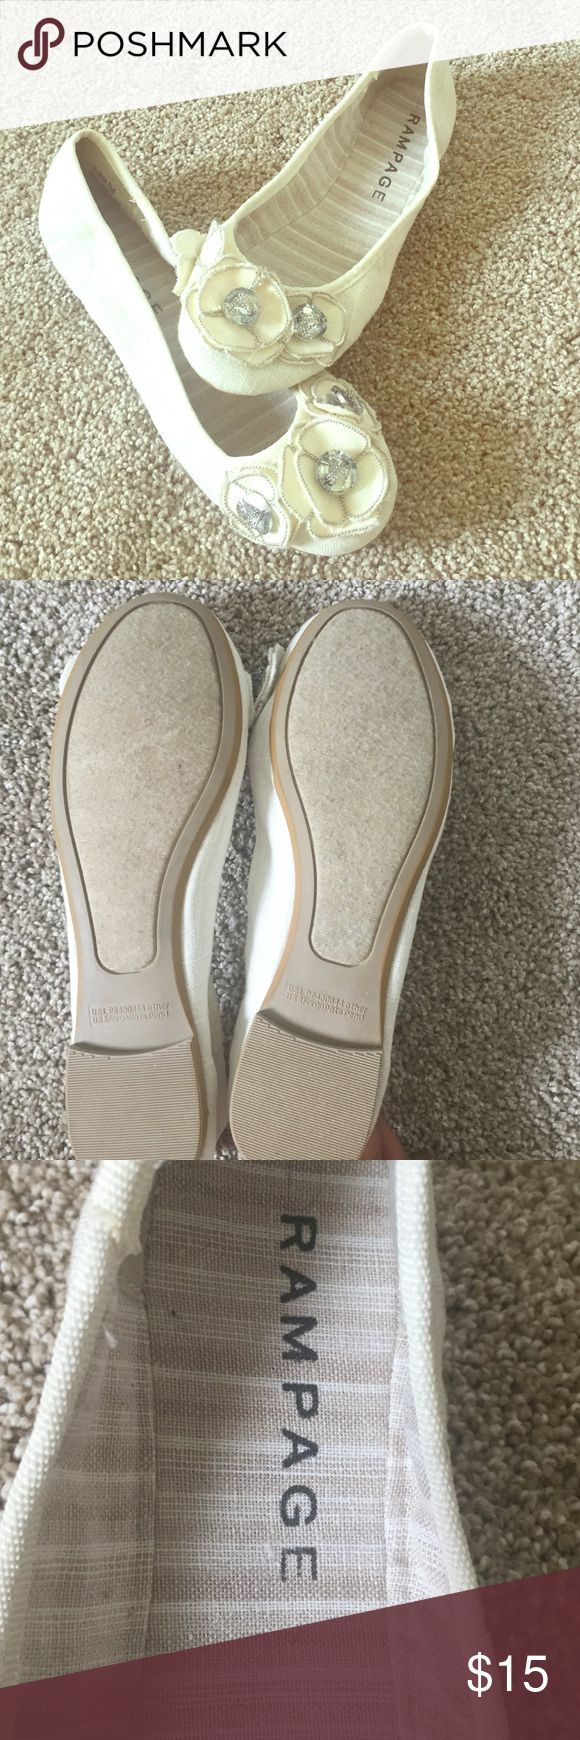 New Rampage Cream Ballet Flats with flower decals Never been worn RAMPAGE Ballet Flats in Cream. Perfect for work and play, easy to dress down and dress up. Classic statement piece perfect for summer, spring and fall outfits. Rampage Shoes Flats & Loafers